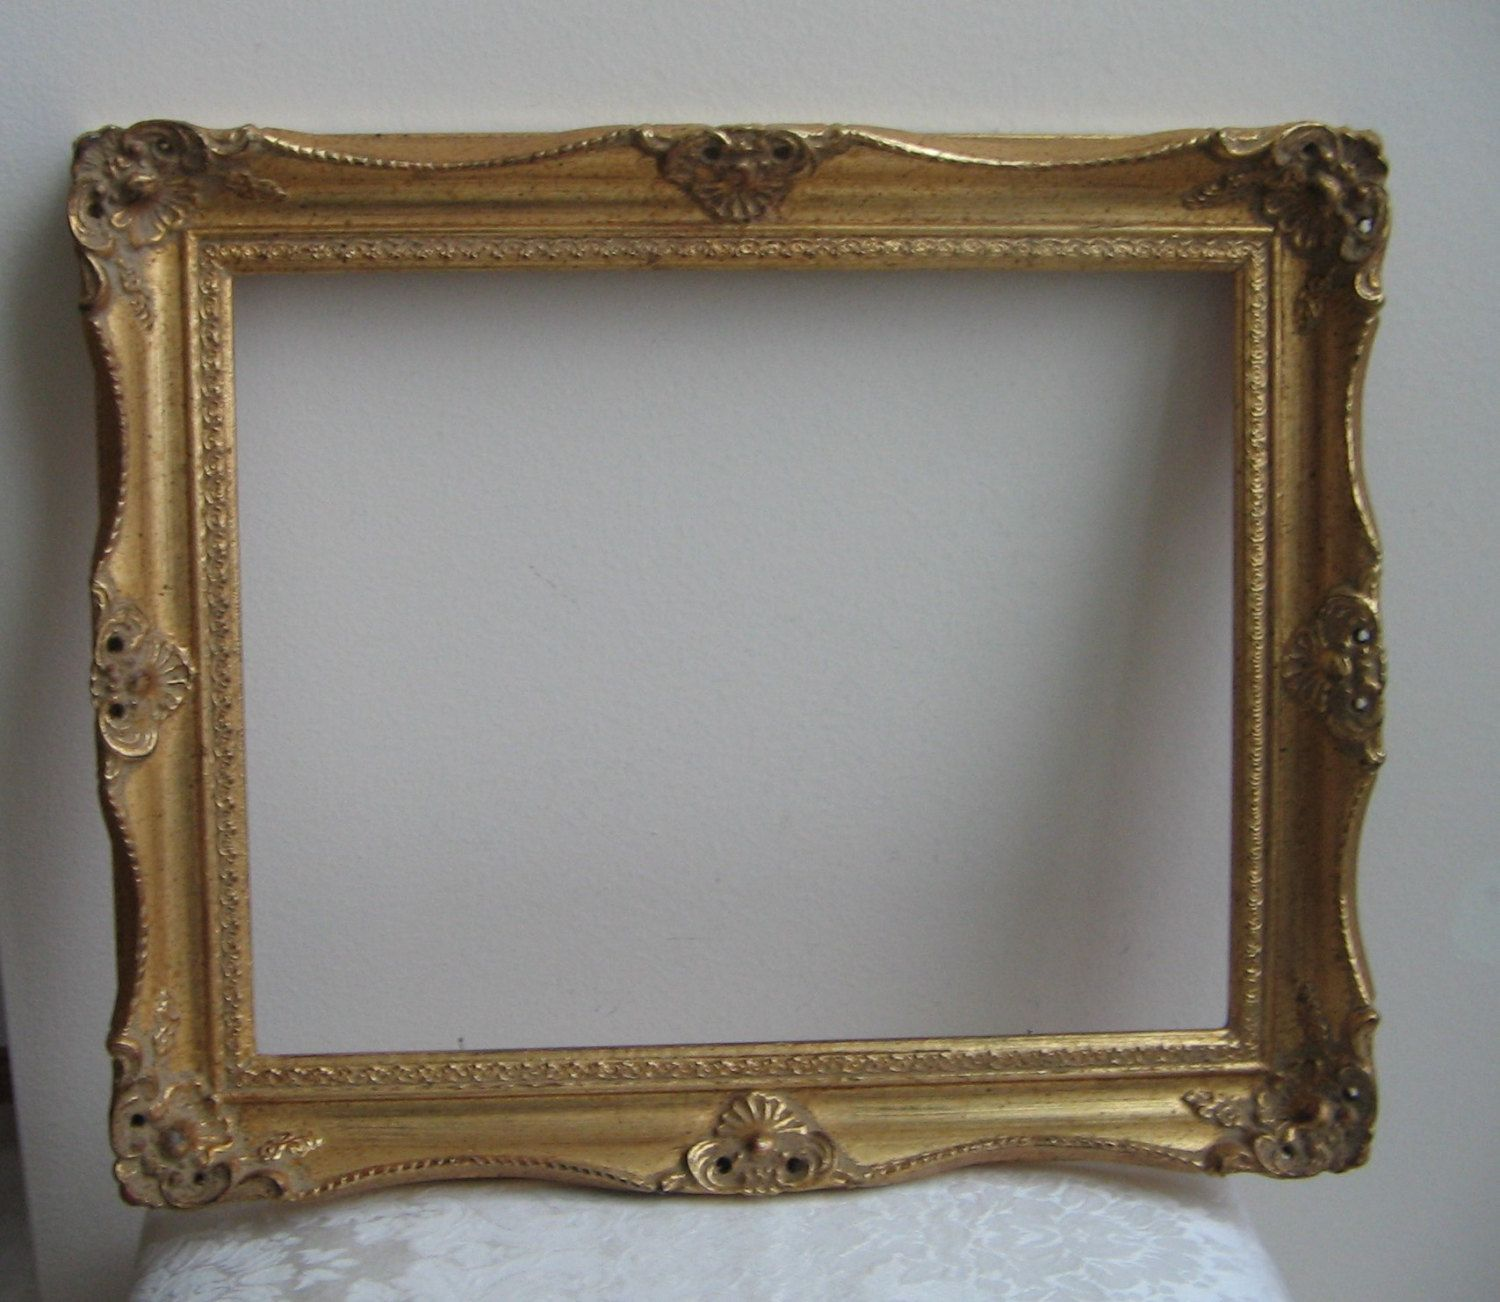 Vintage Large Picture Frame Ornate Gold Gilt Wood 14 x 17 With ...